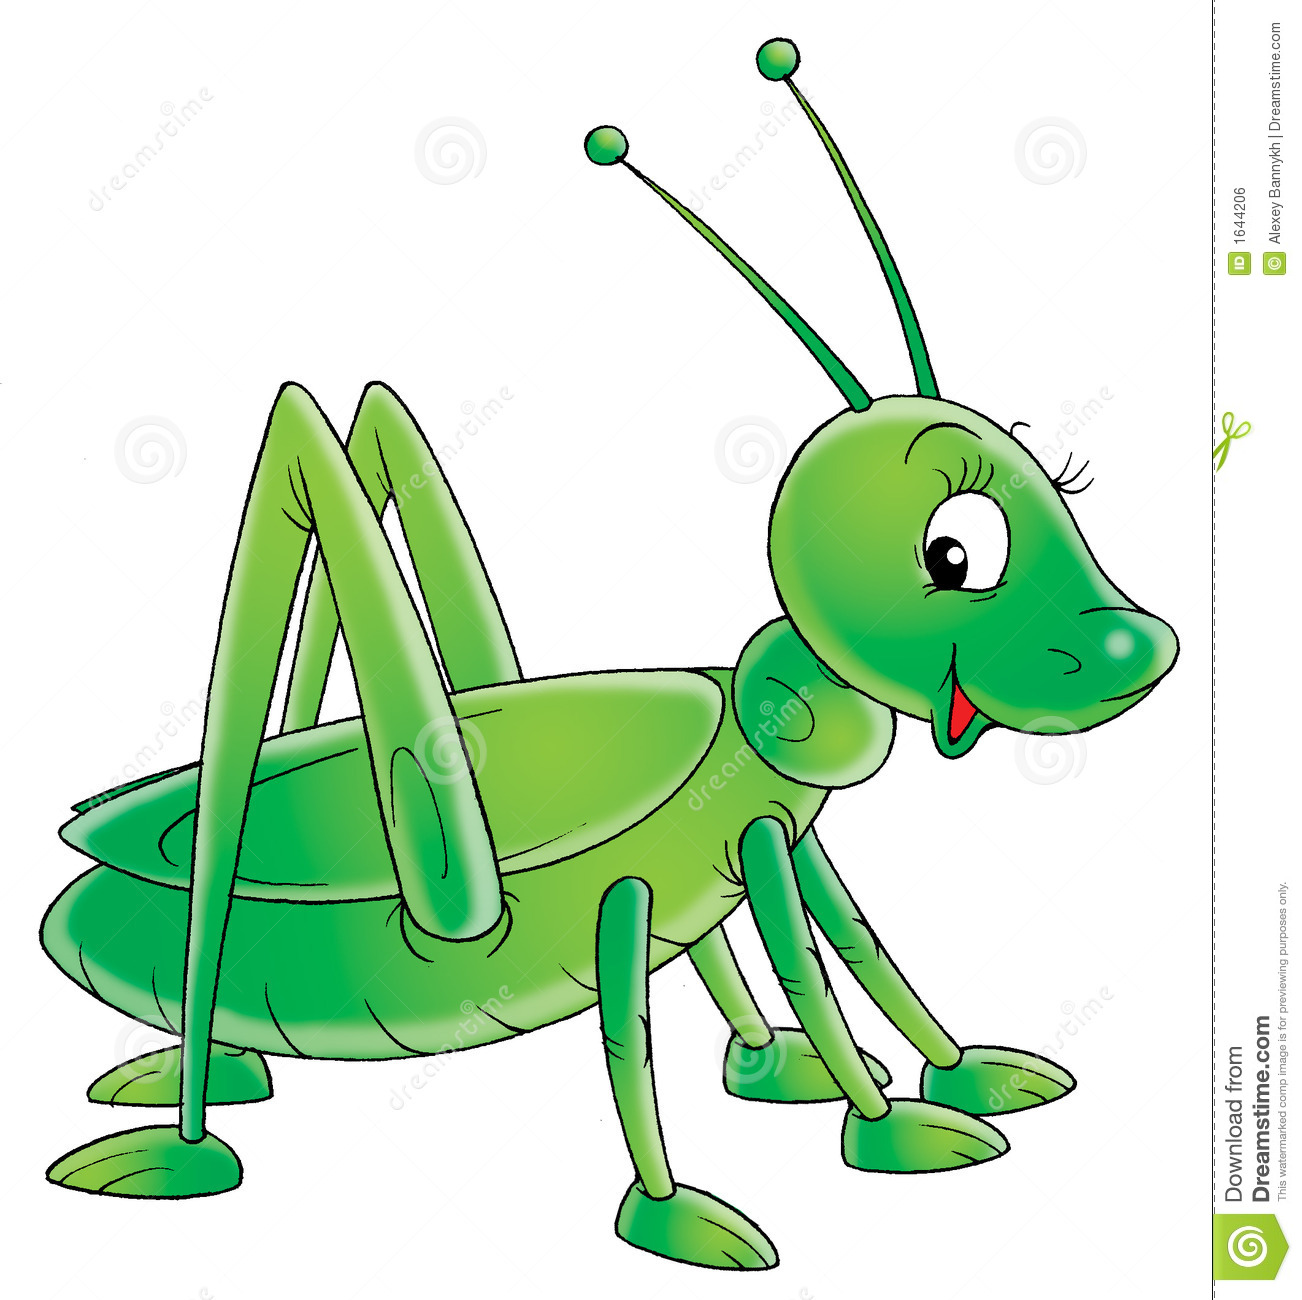 Clip Art Grasshopper Isolated clip-art and